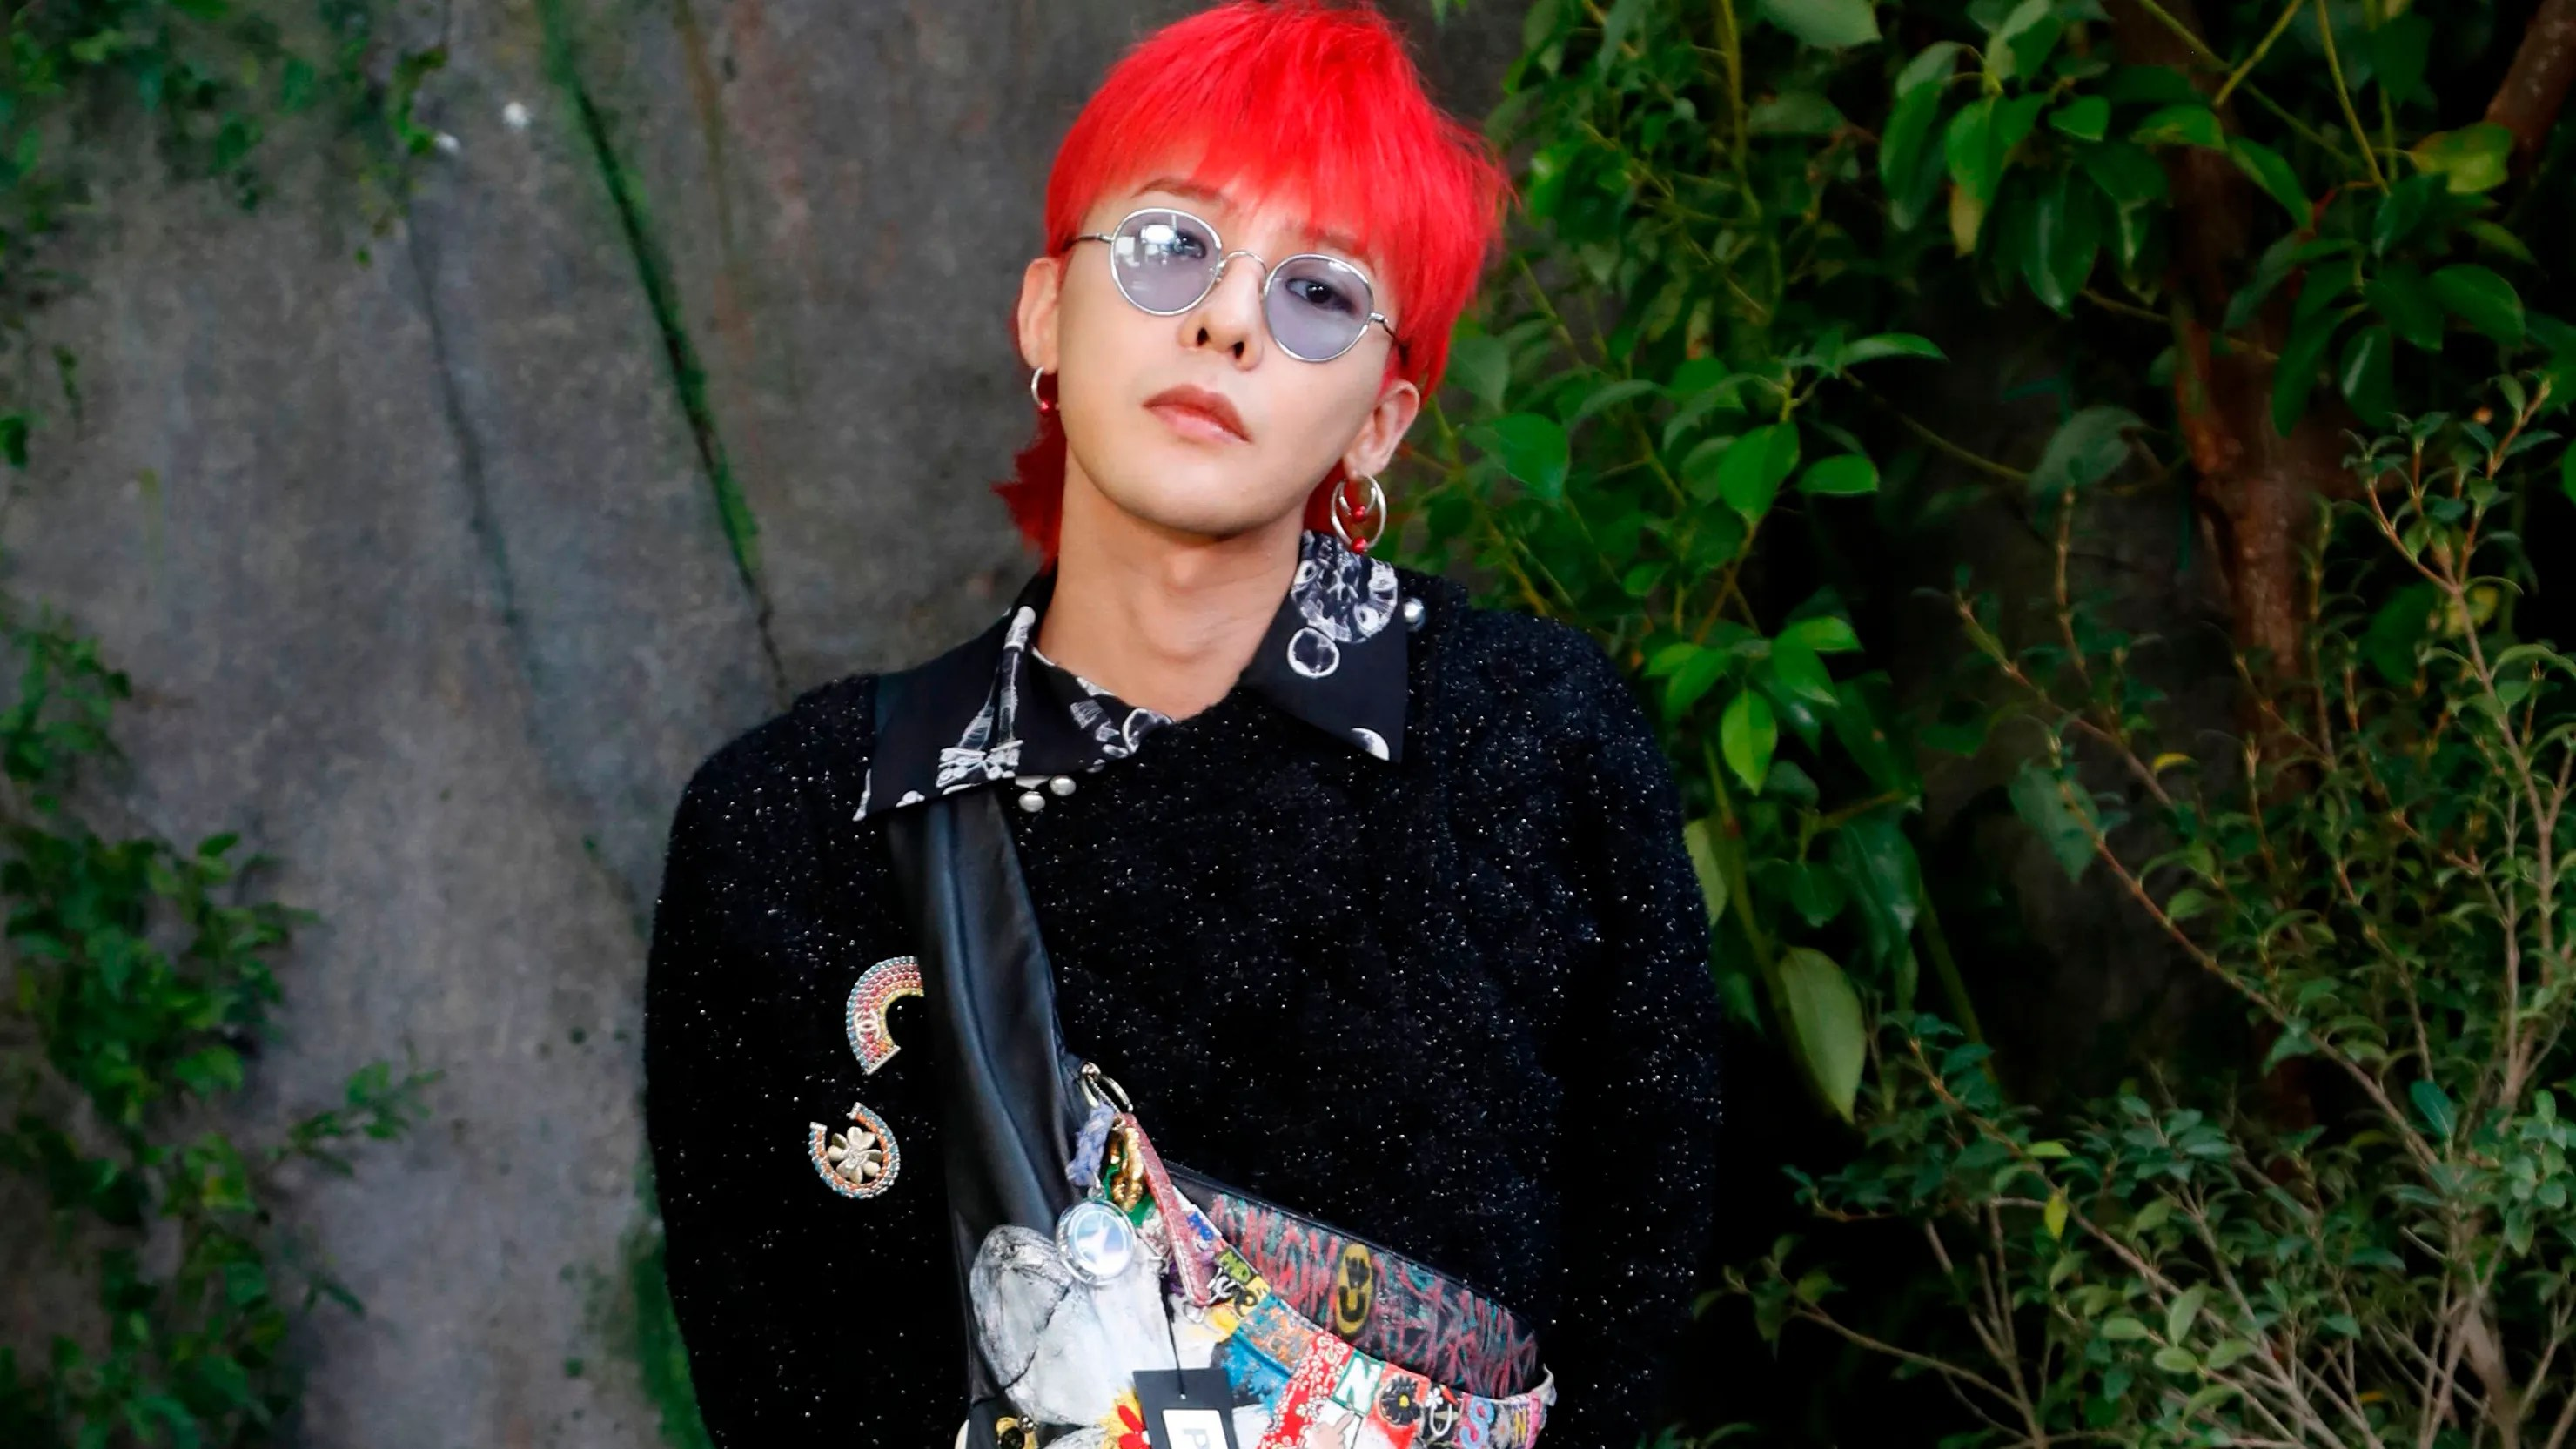 Fall Wallpaper 16 9 G Dragon Wears Chanel Womenswear At Paris Fashion Week